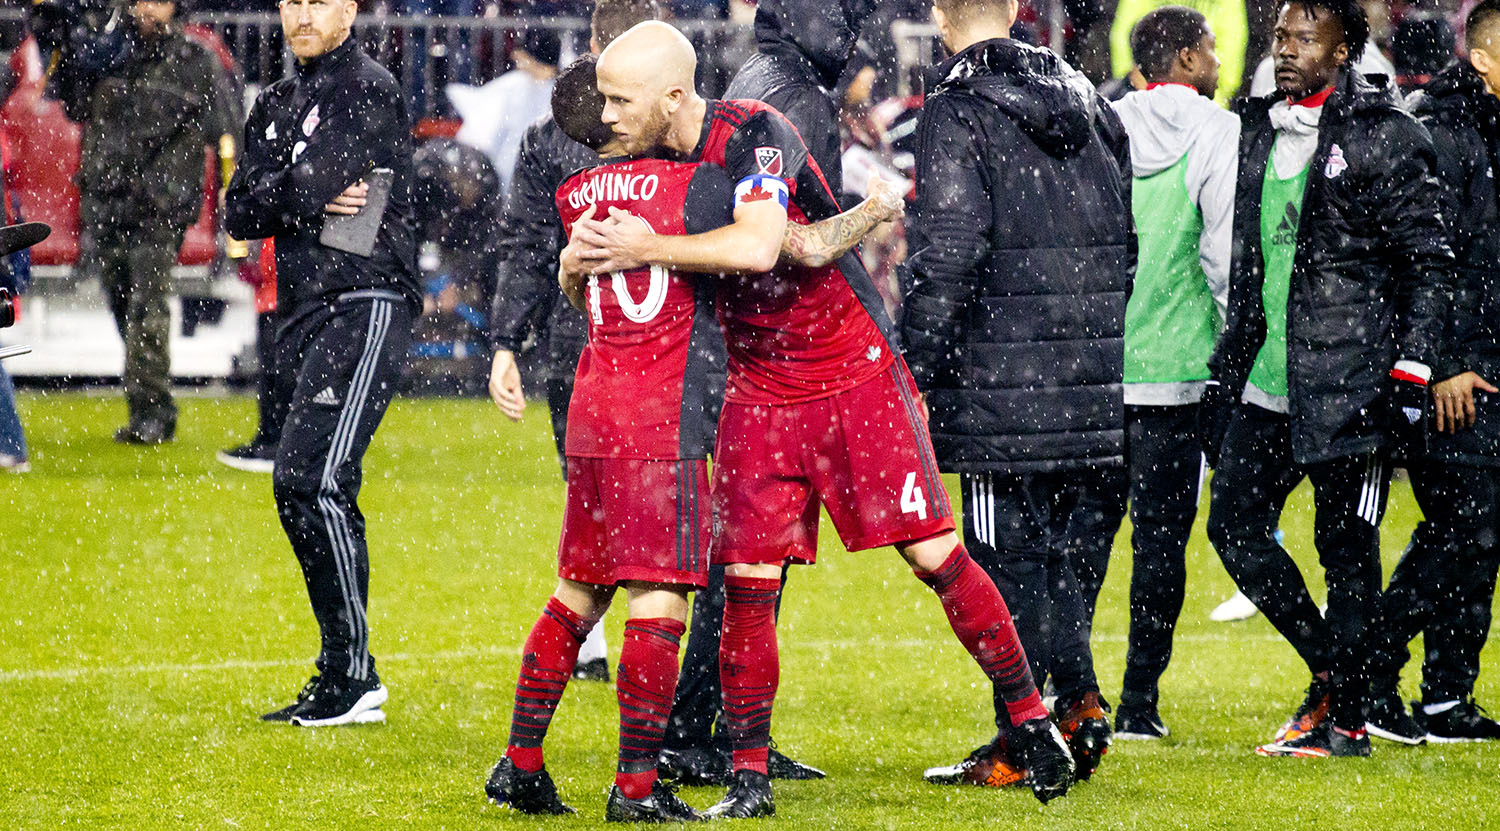 Sebastian Giovino and Michael Bradley give each other a hug in the rain after advancing 2-2 on away goals to the next round of the MLS playoffs.